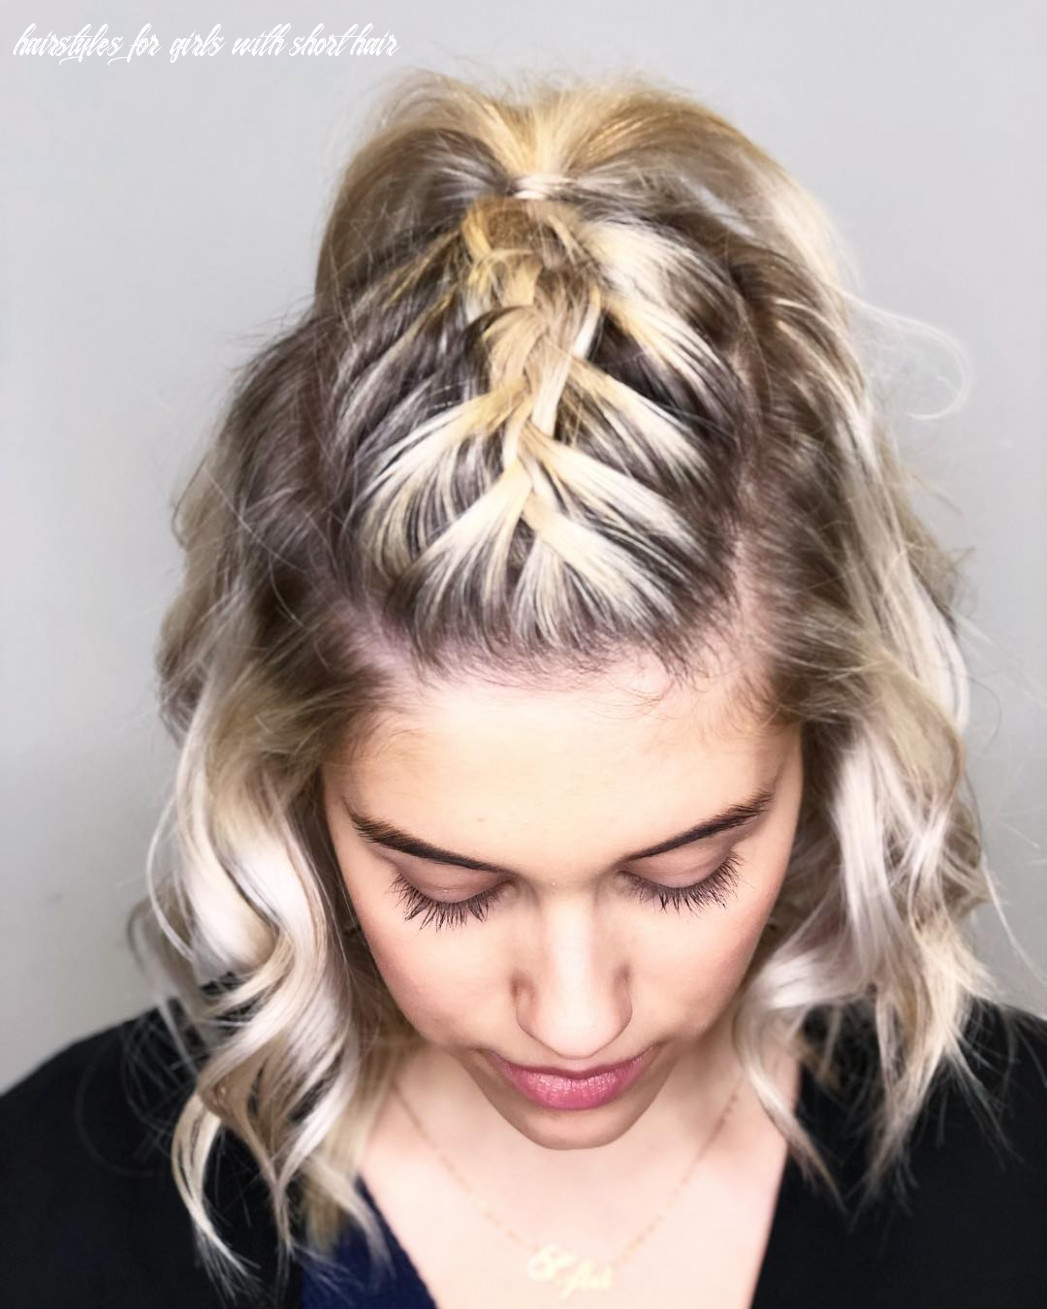 11 easy ways to style your hair hairstyles for short hair   meesho hairstyles for girls with short hair